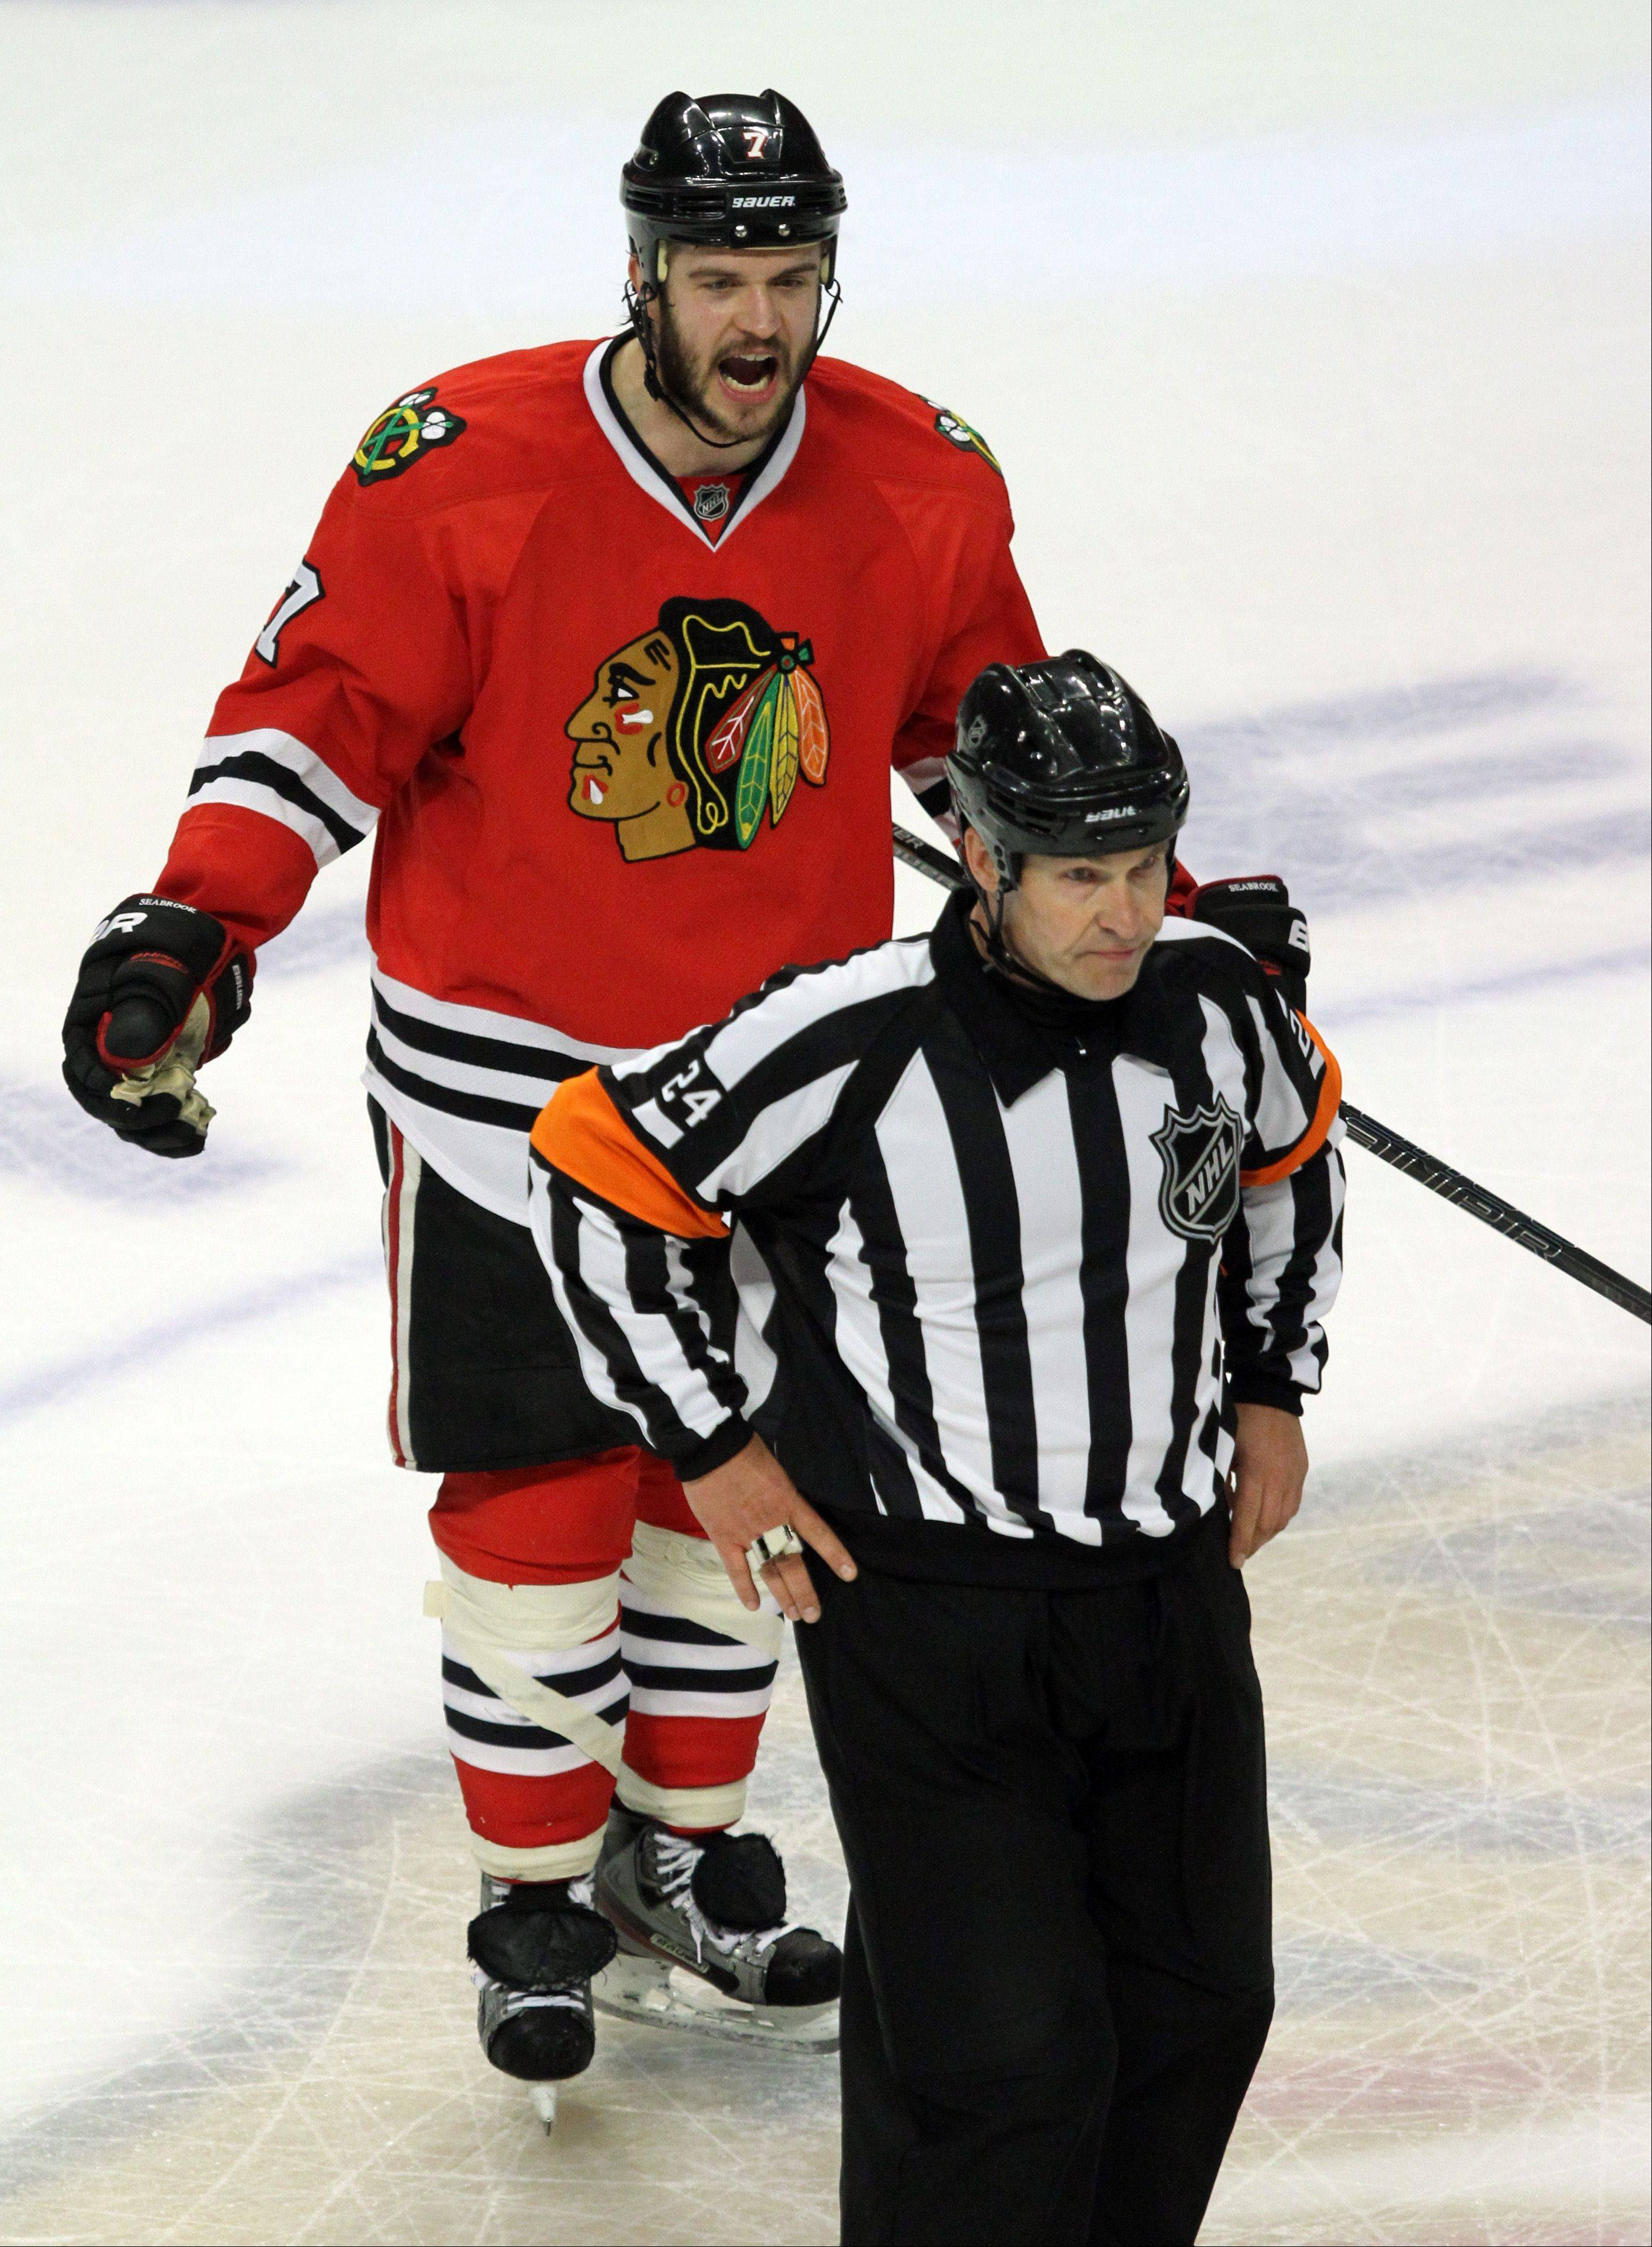 NHL rewards ref who took away Hawks' goal